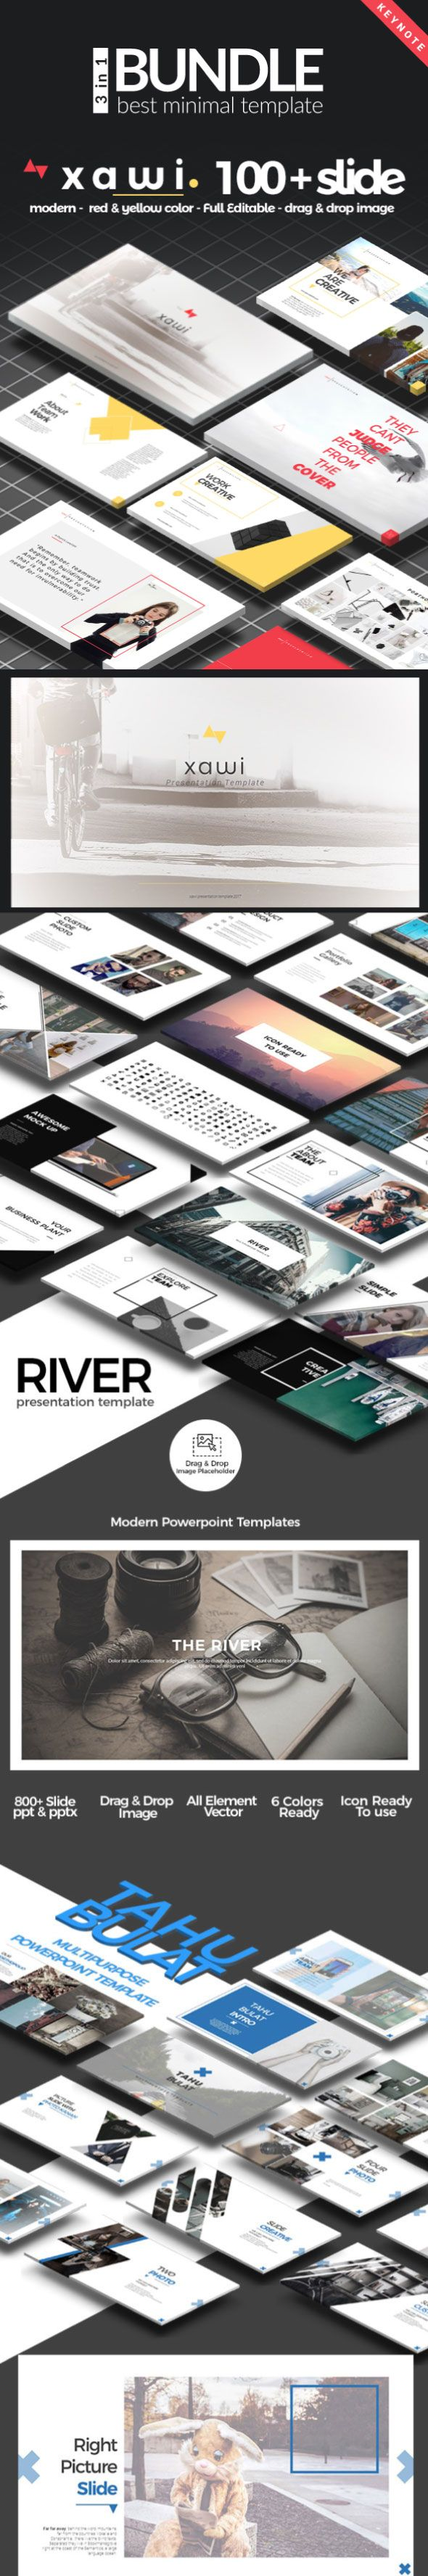 Bundle 3 in 1 powerpoint template powerpoint ppt social media bundle 3 in 1 powerpoint template powerpoint ppt social media entrepreneur available here toneelgroepblik Image collections